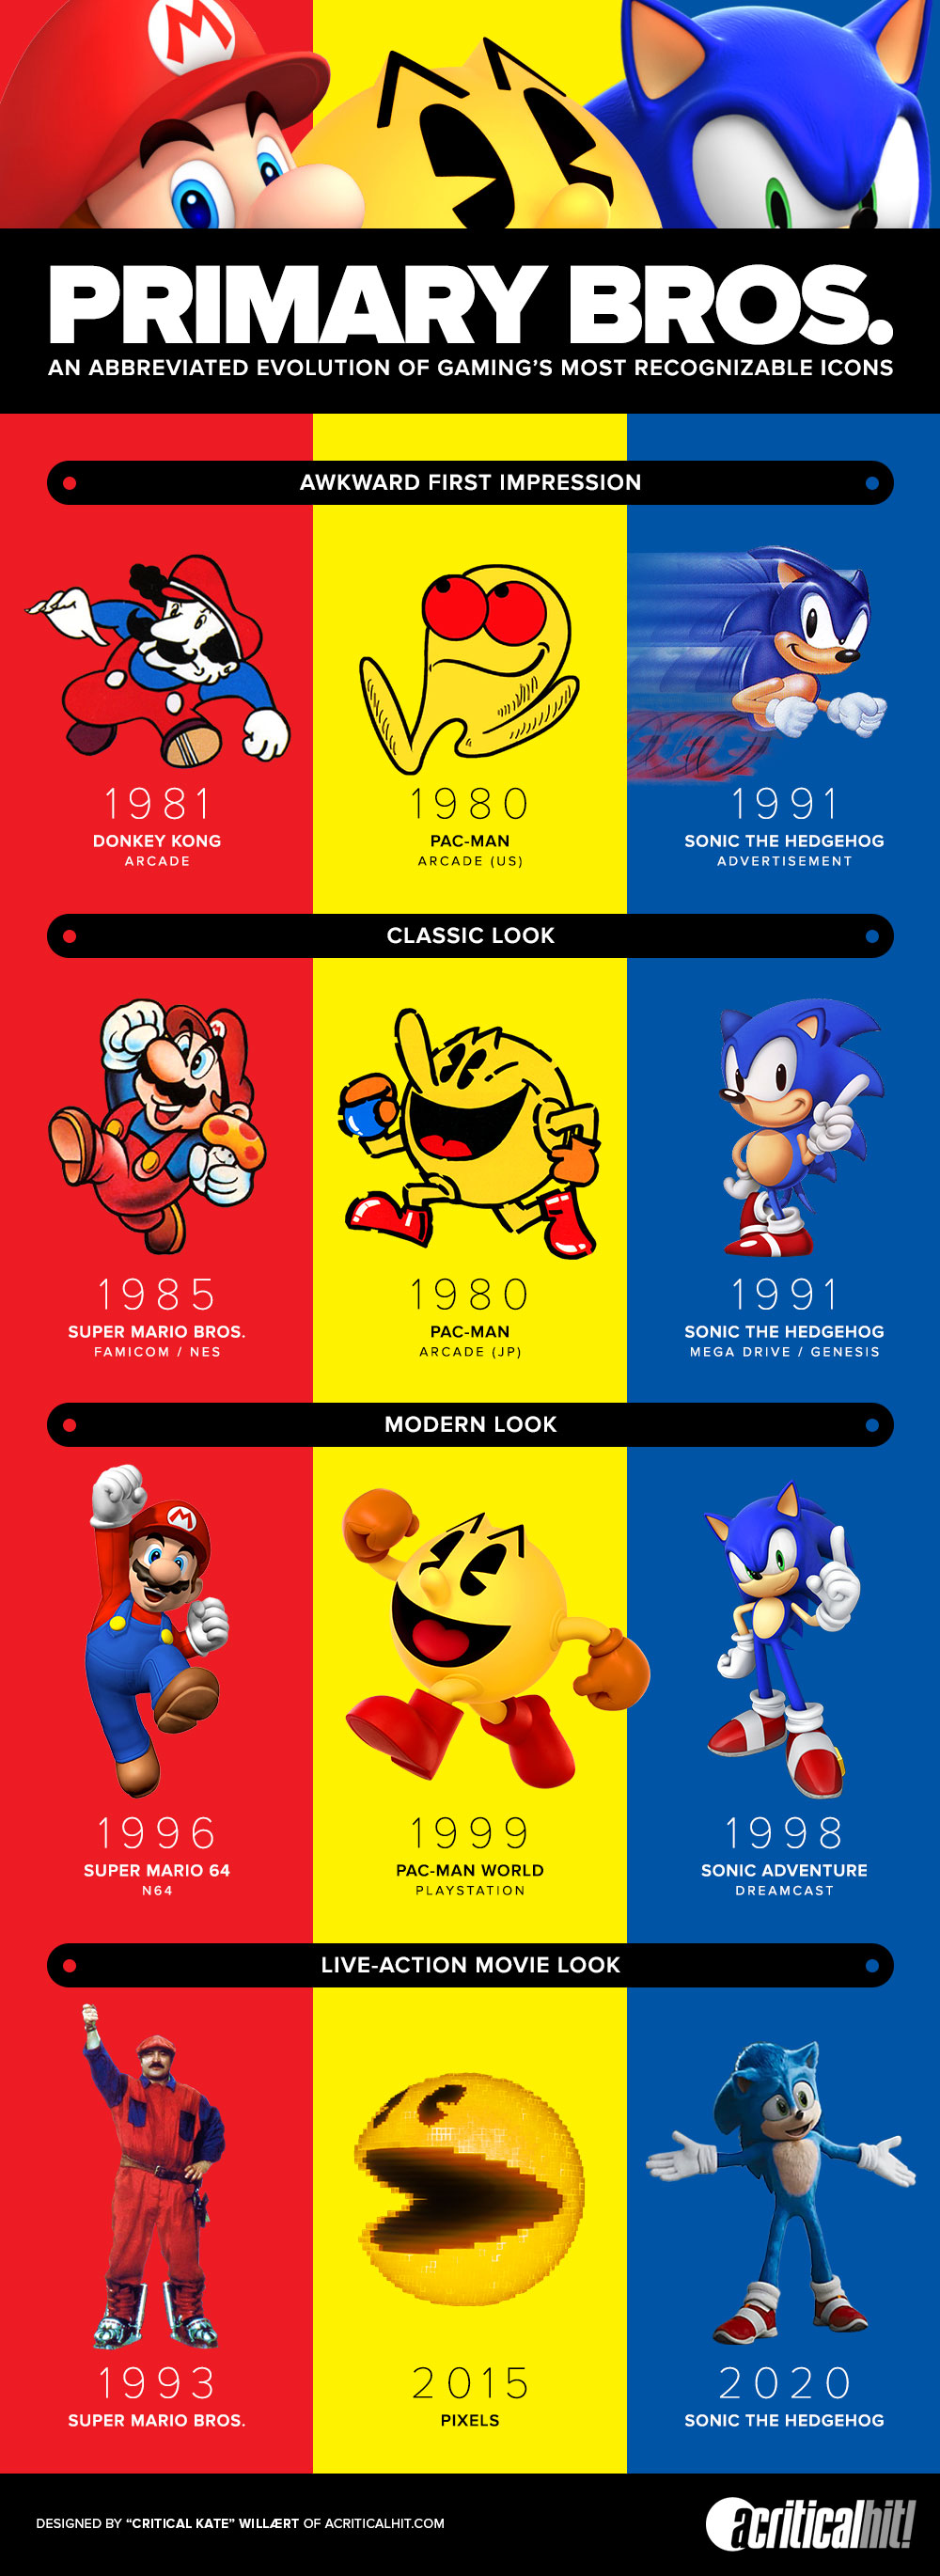 A visual comparison of different incarnations of Mario, Pac-Man, and Sonic.